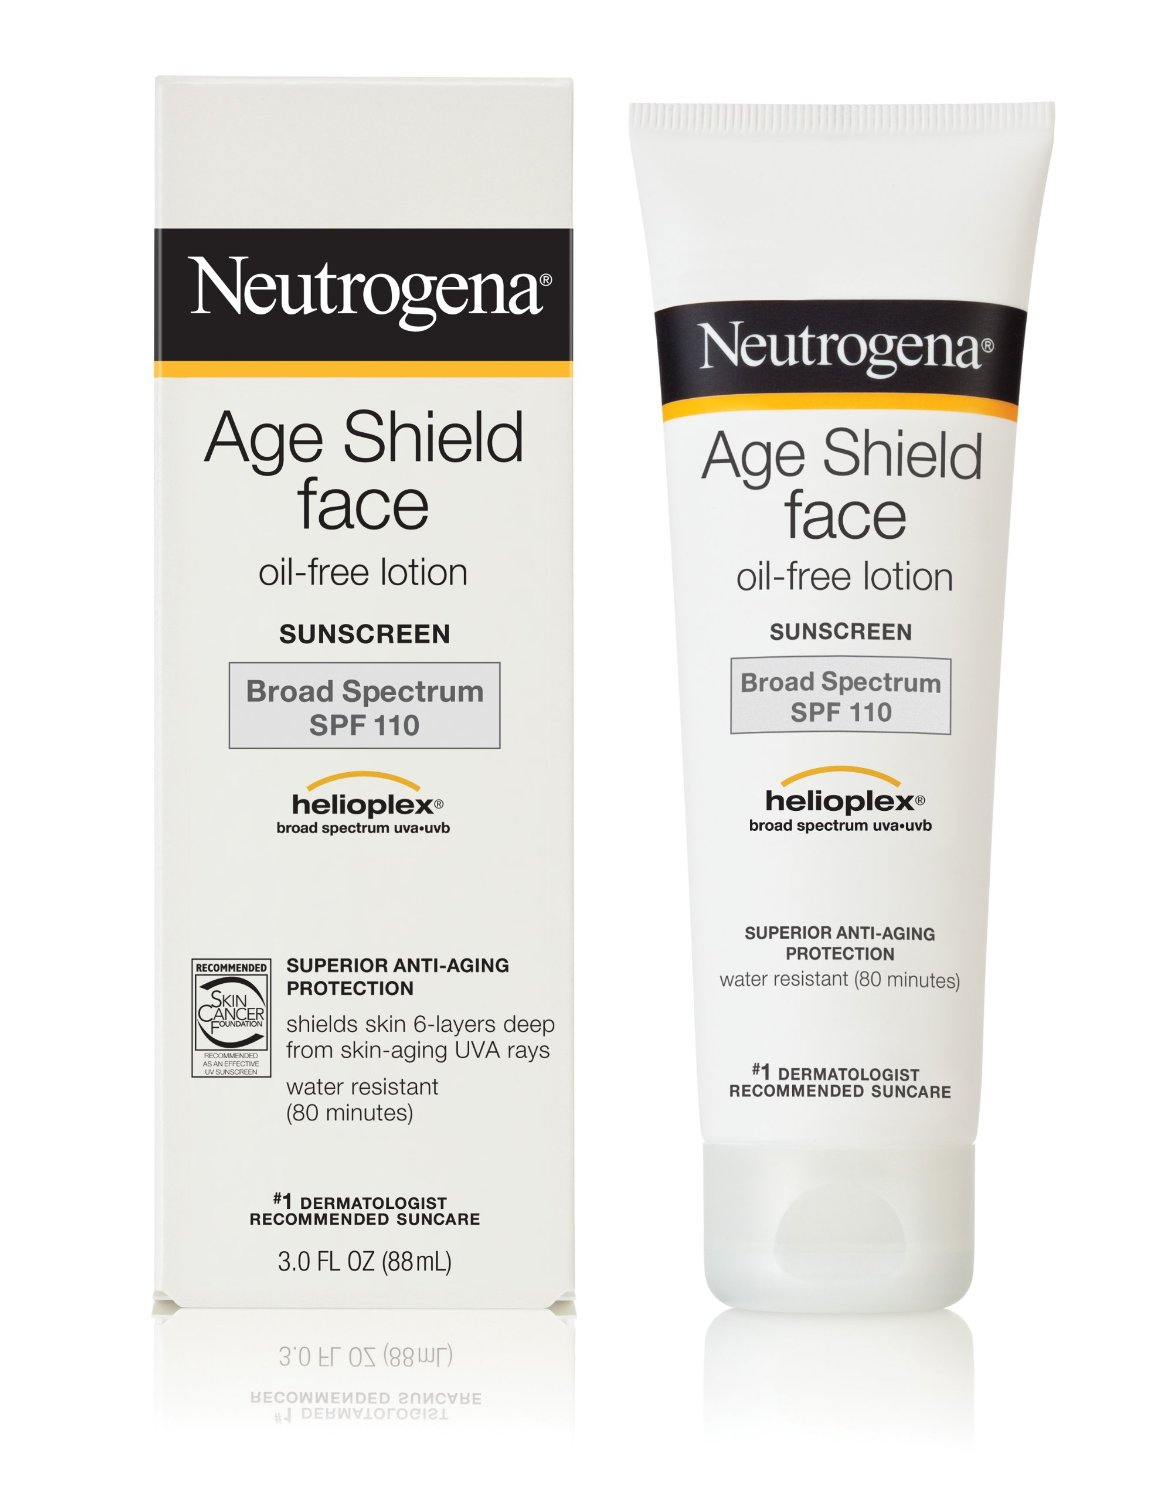 Neutrogena Age Shield